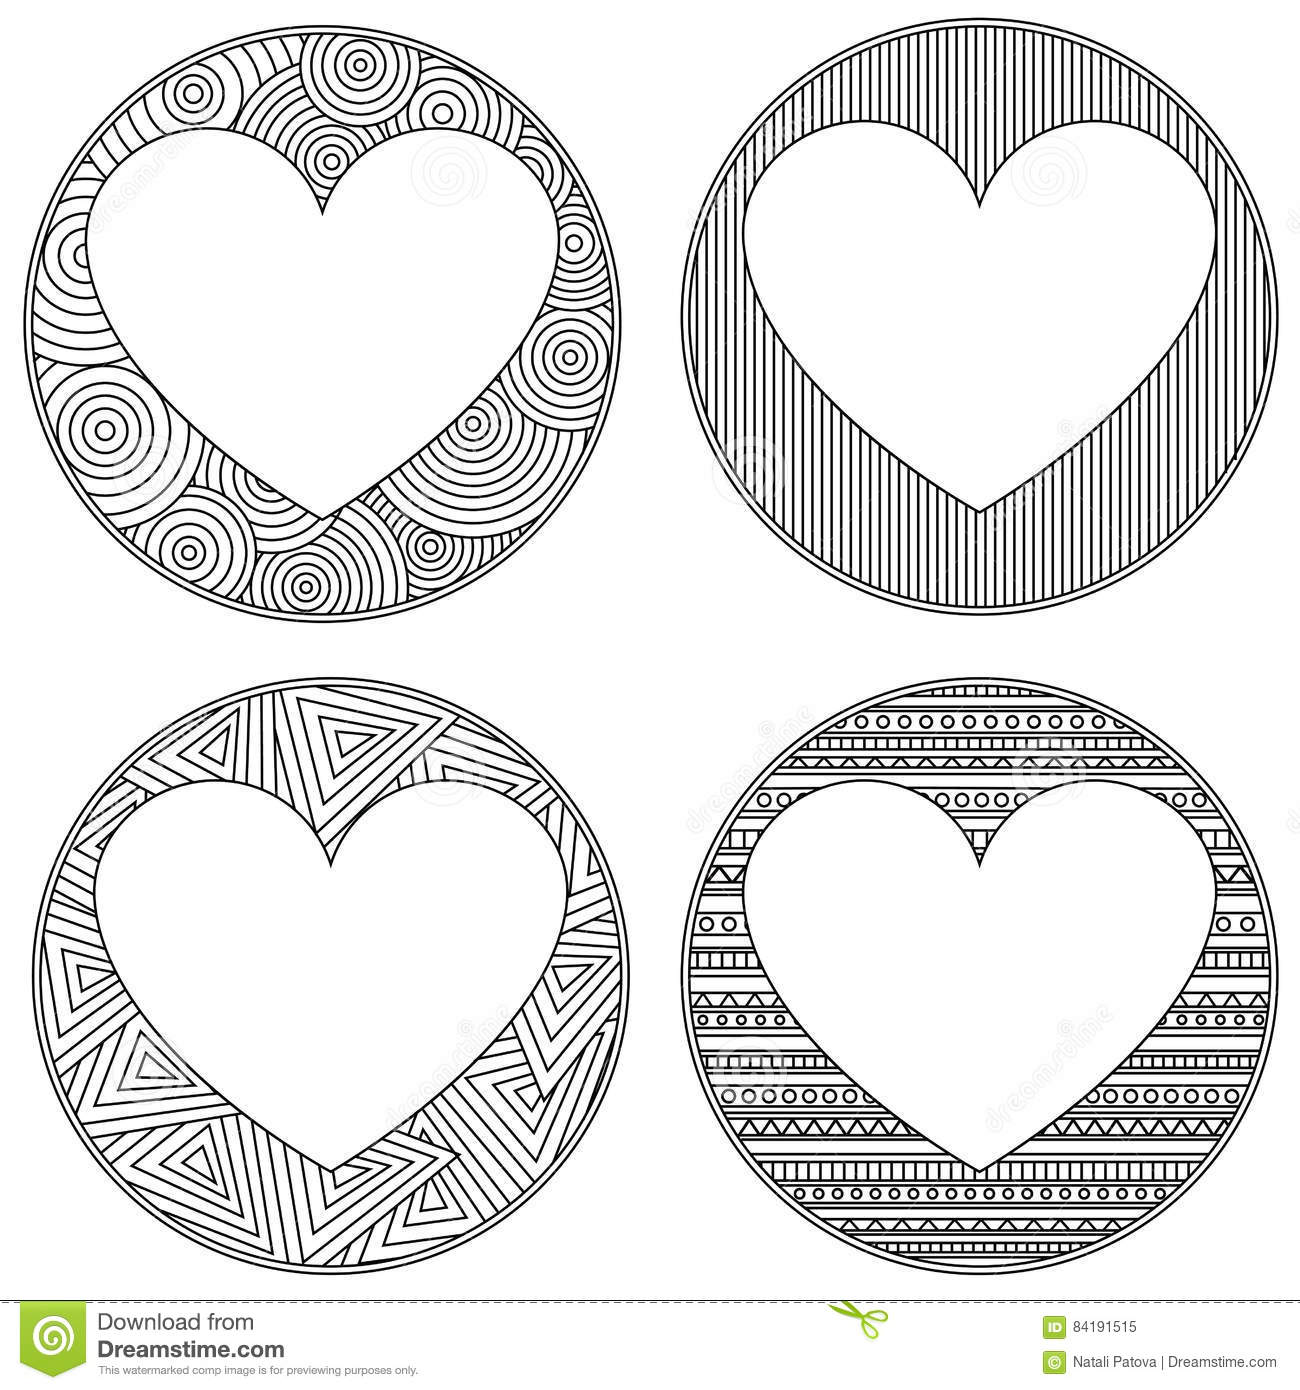 Uncolored Heart Shaped Frame In Zen Art Style With Place For The ...